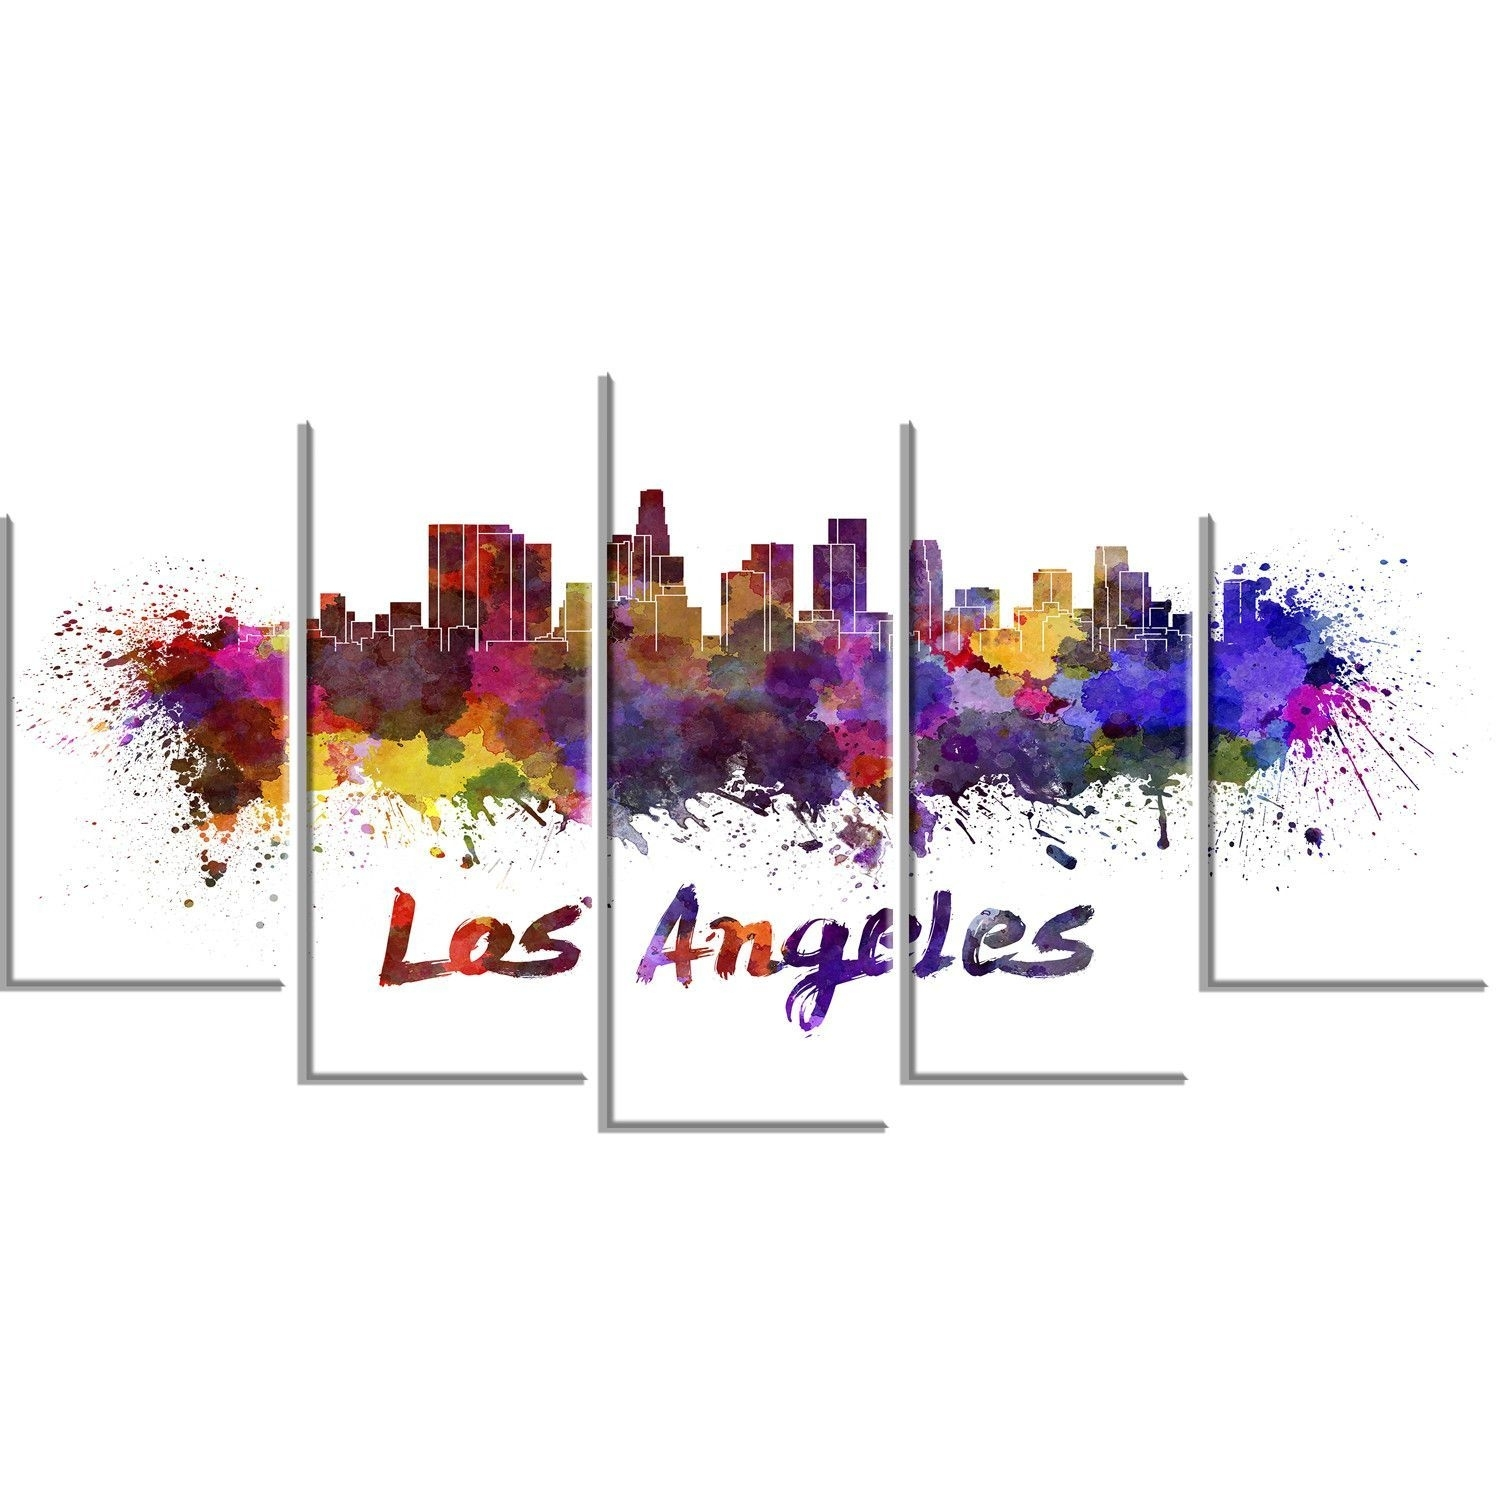 Los Angeles Skyline Cityscape 5 Piece Graphic Art On Wrapped Throughout Latest Los Angeles Canvas Wall Art (Gallery 11 of 15)